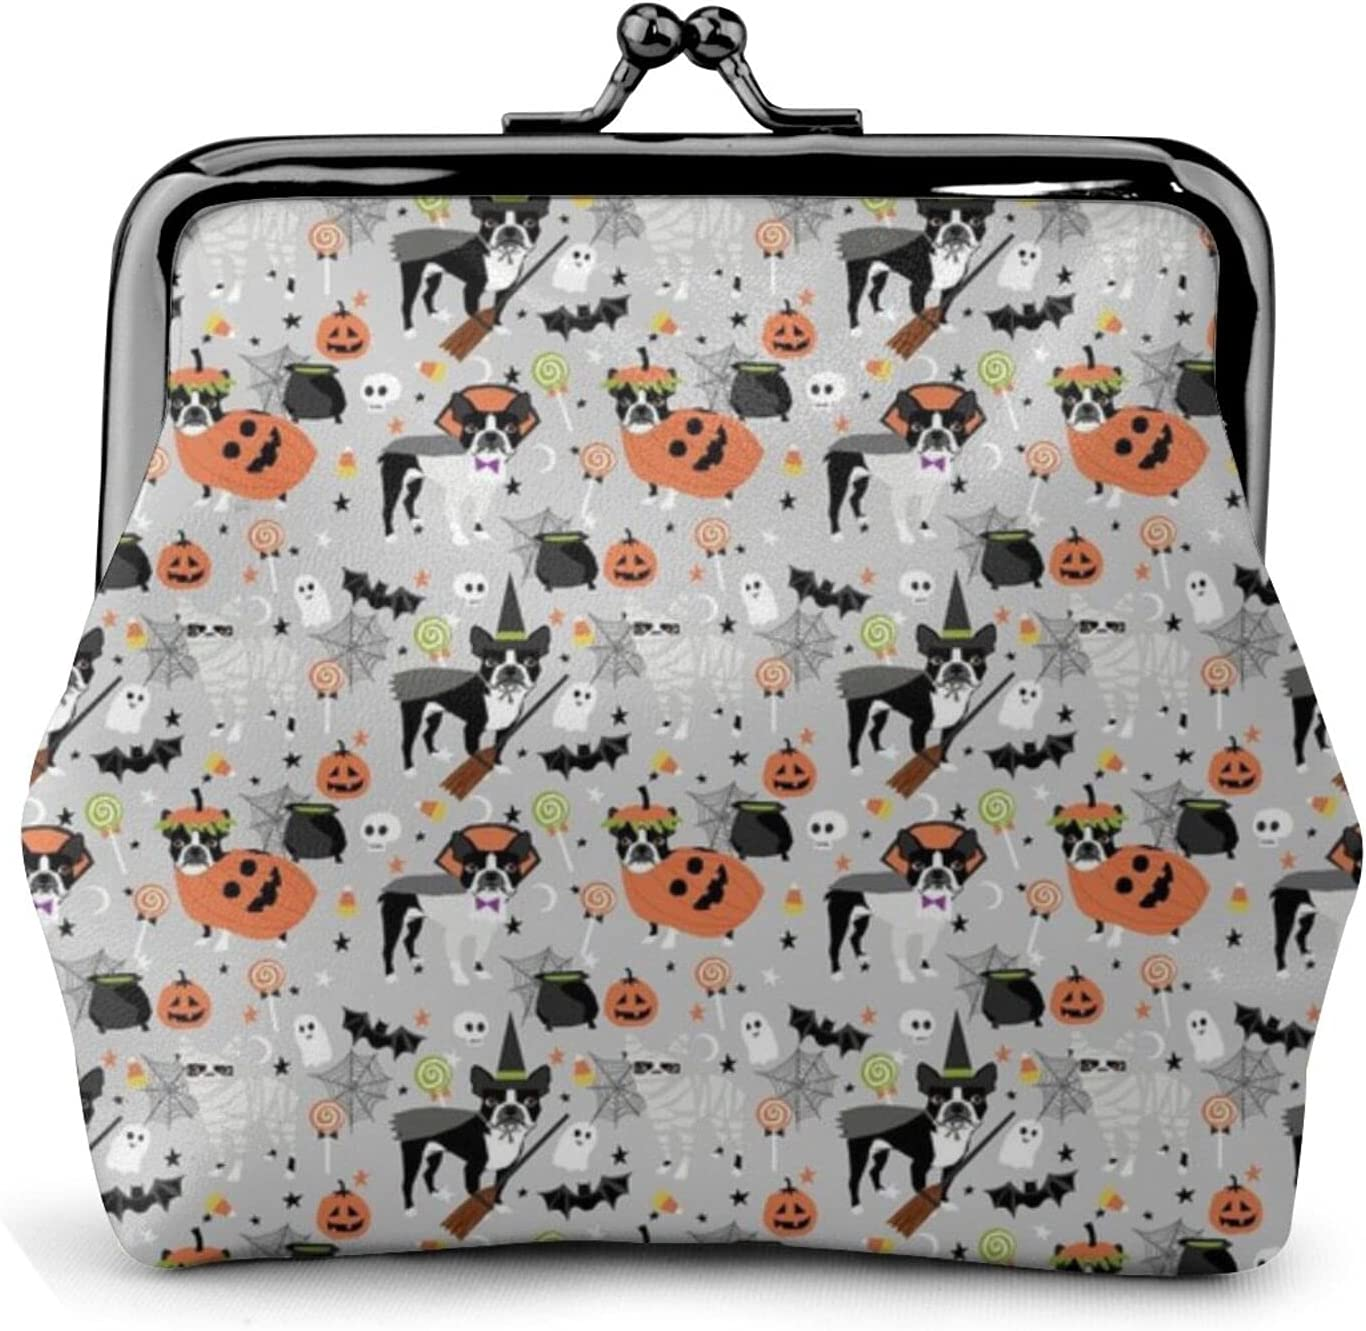 Boston Terrier Halloween 1002 Coin Purse Retro Money Pouch with Kiss-lock Buckle Small Wallet for Women and Girls